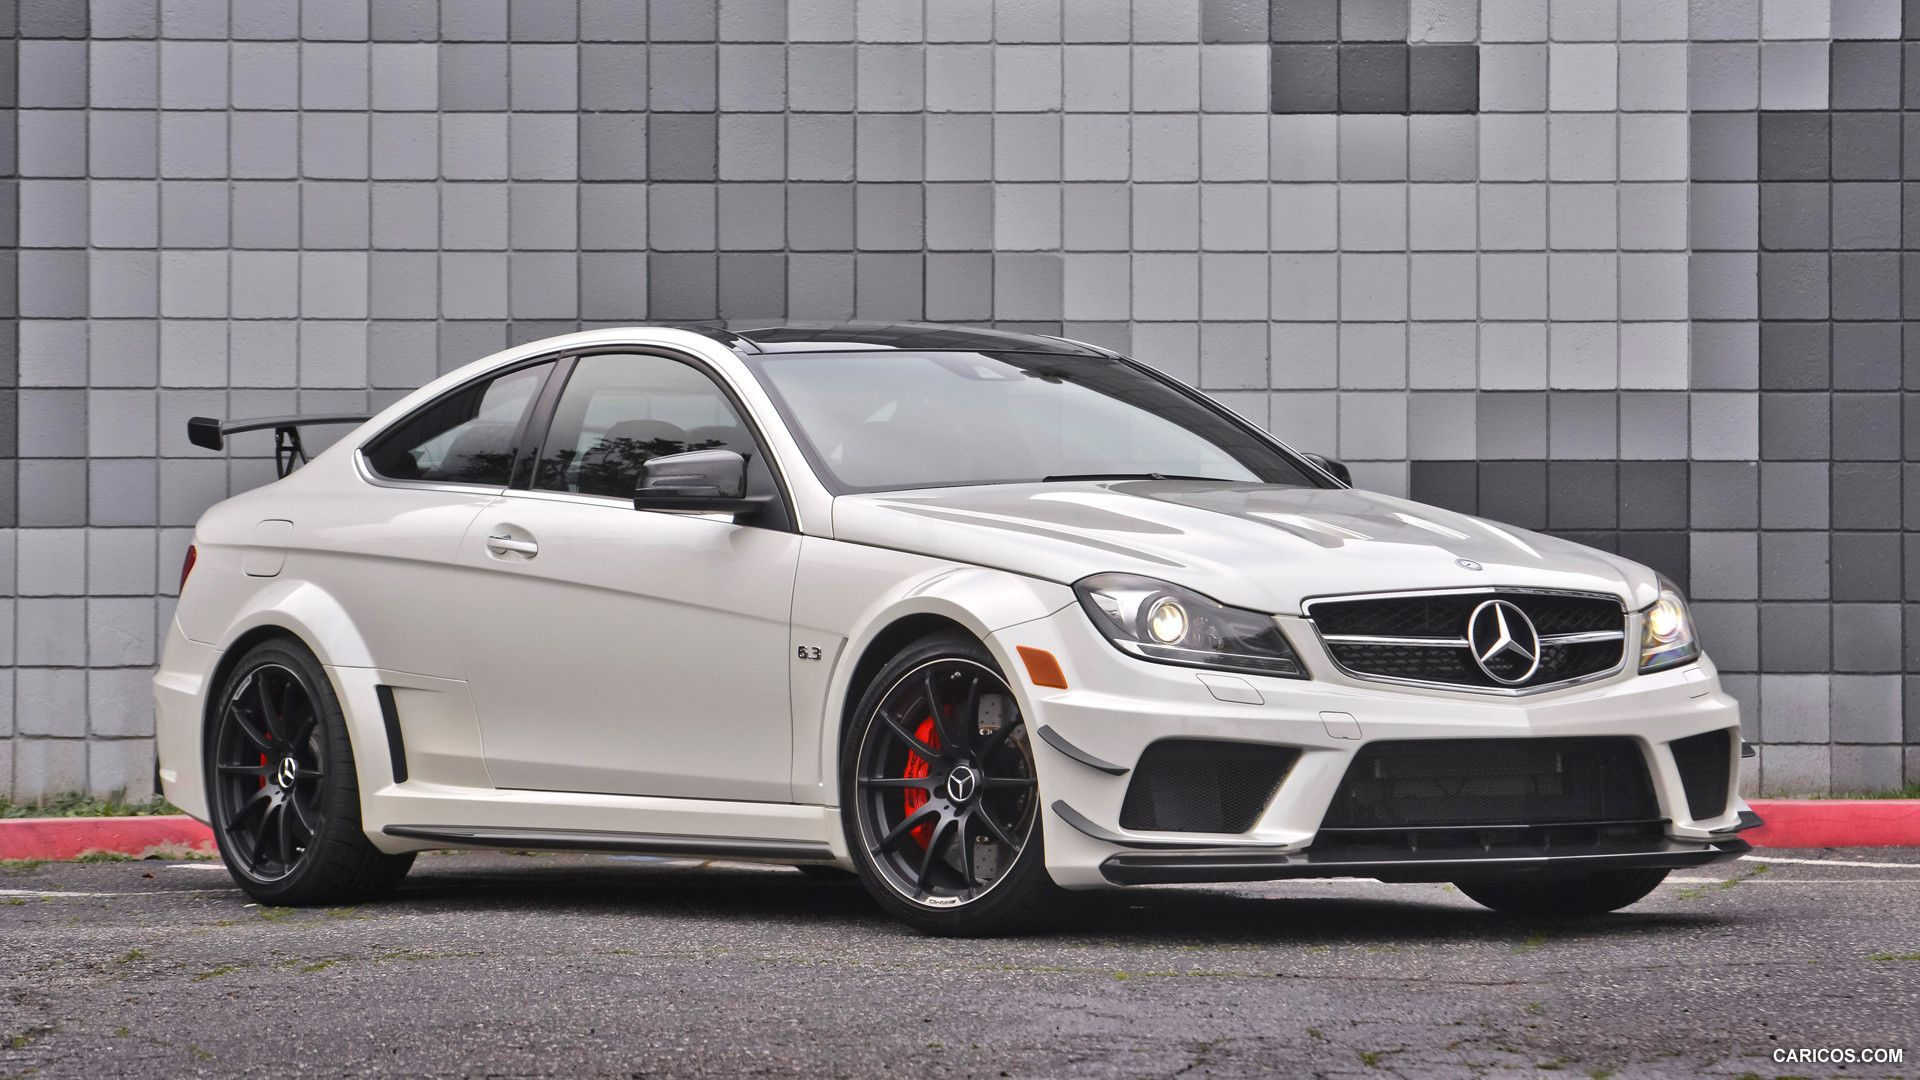 2012 mercedes benz c63 amg coup black series amg. Black Bedroom Furniture Sets. Home Design Ideas